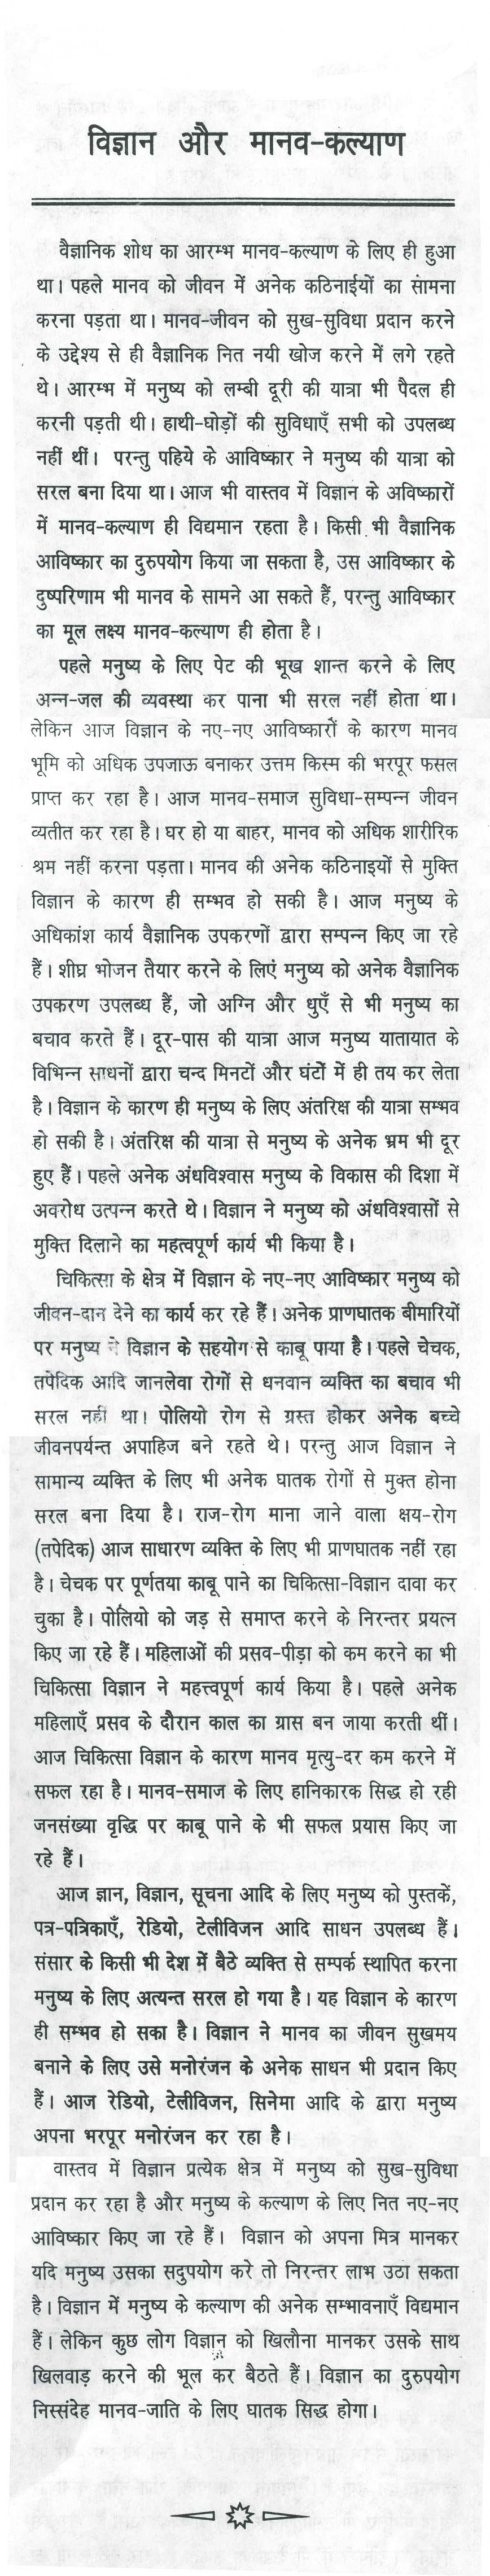 019 Advantage And Disadvantage Of Science Essay Example Benefit Education On Importance In Hindi Advantages Disadvantages Higher 10061 Benefits Shocking Pdf English 868